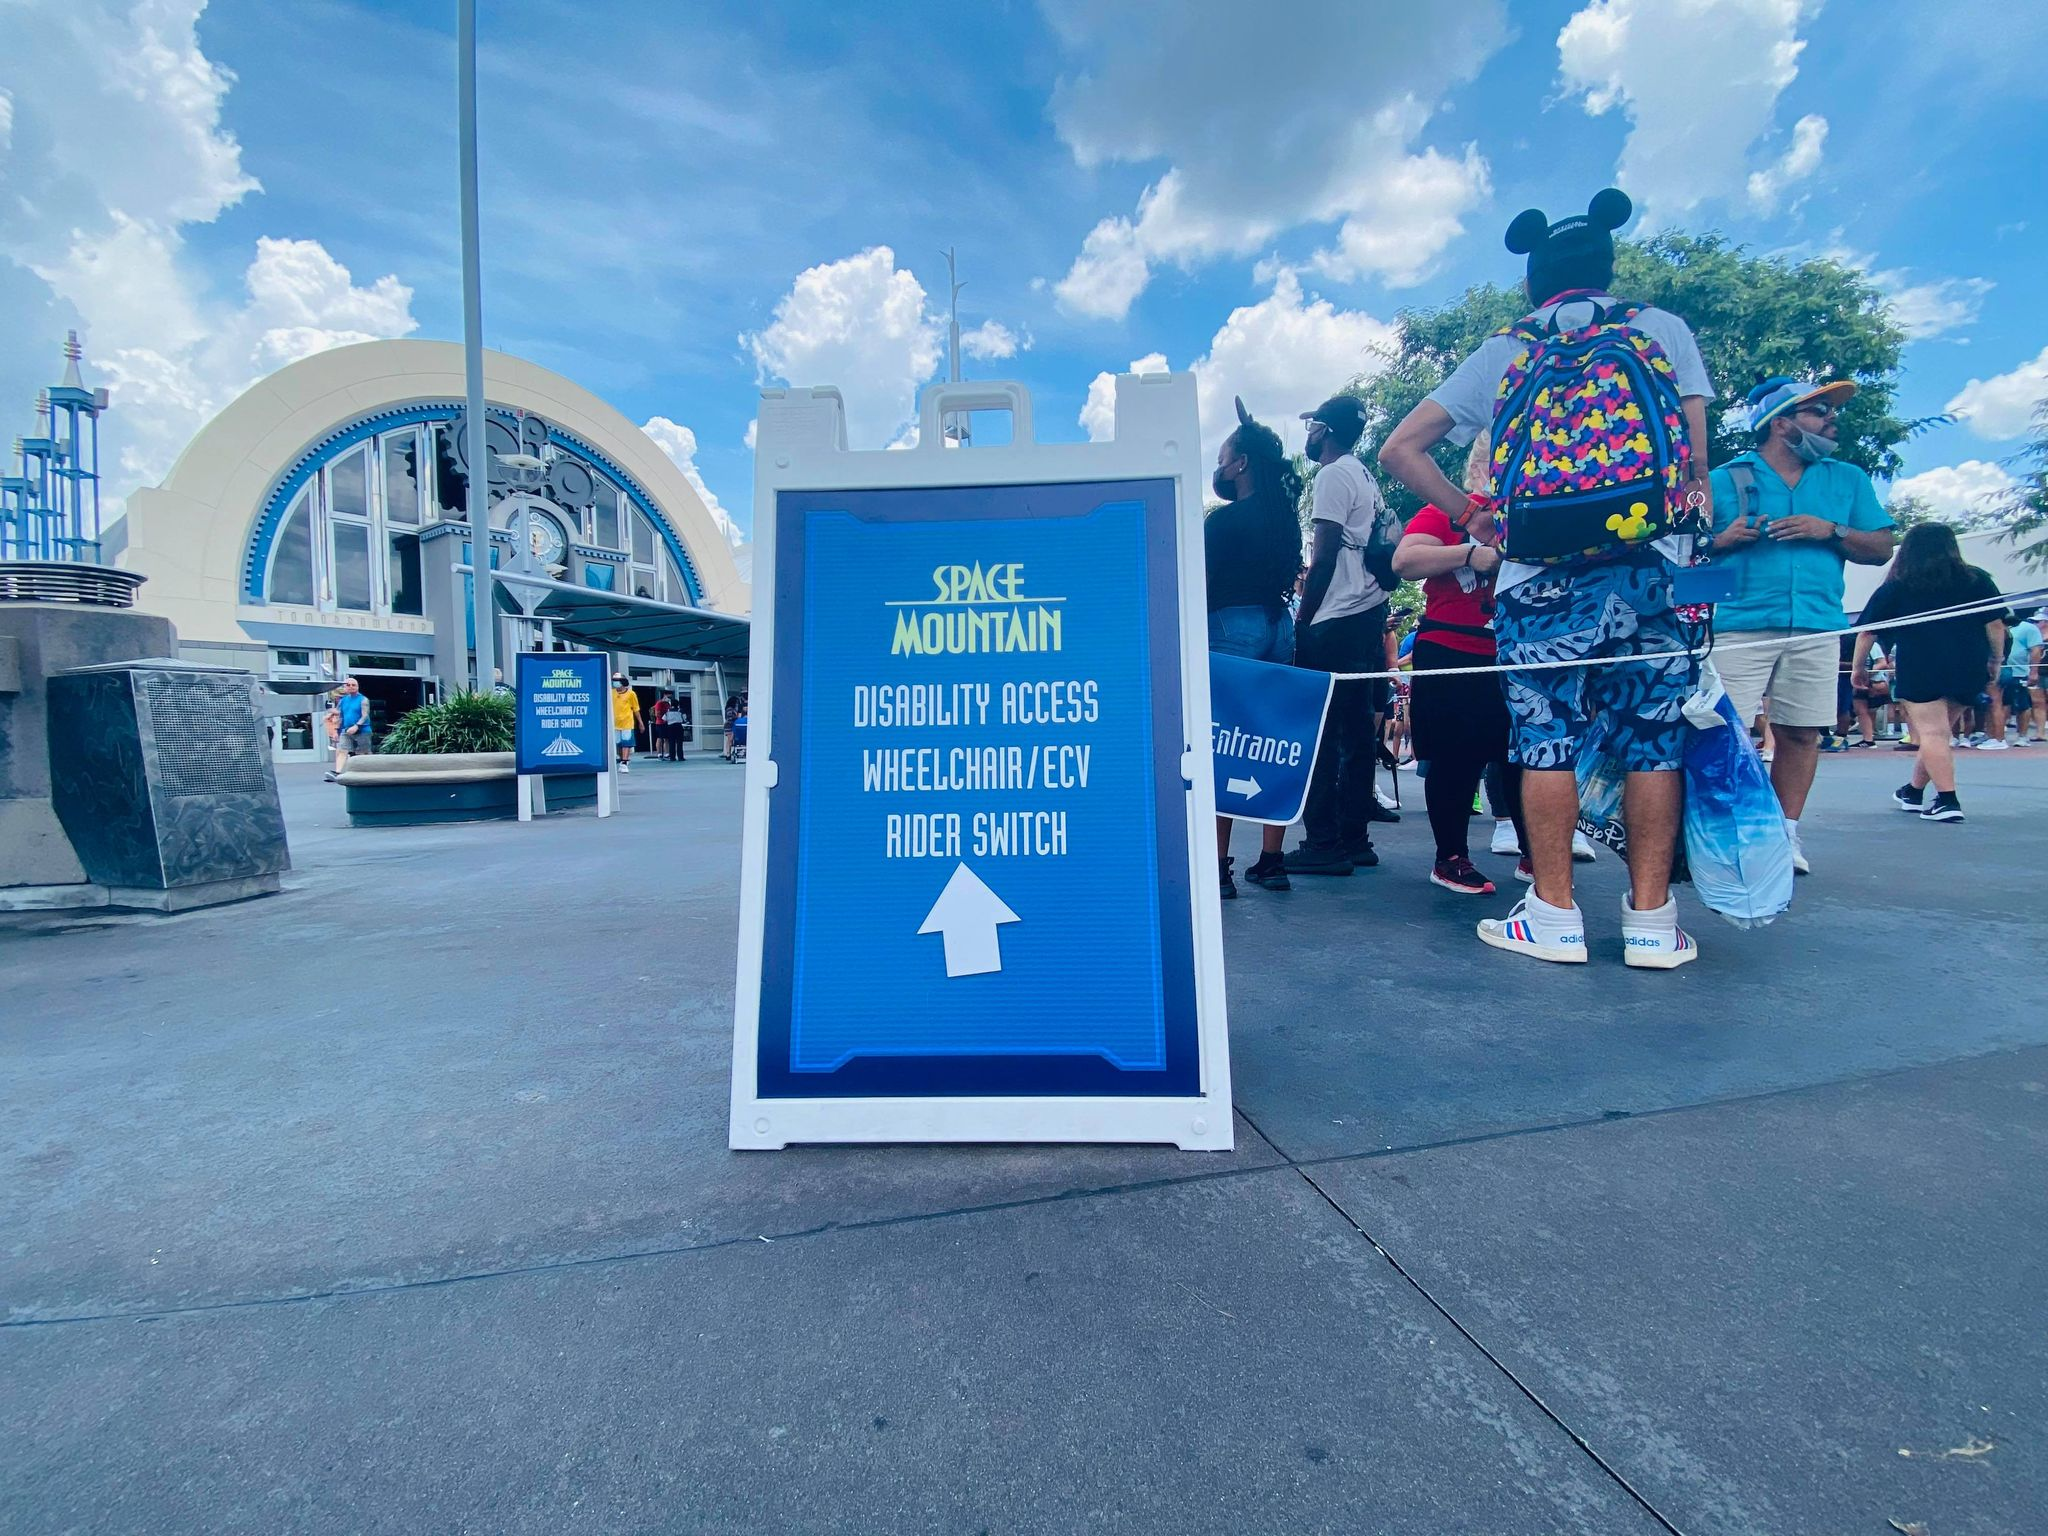 space mountain rider switch access pass